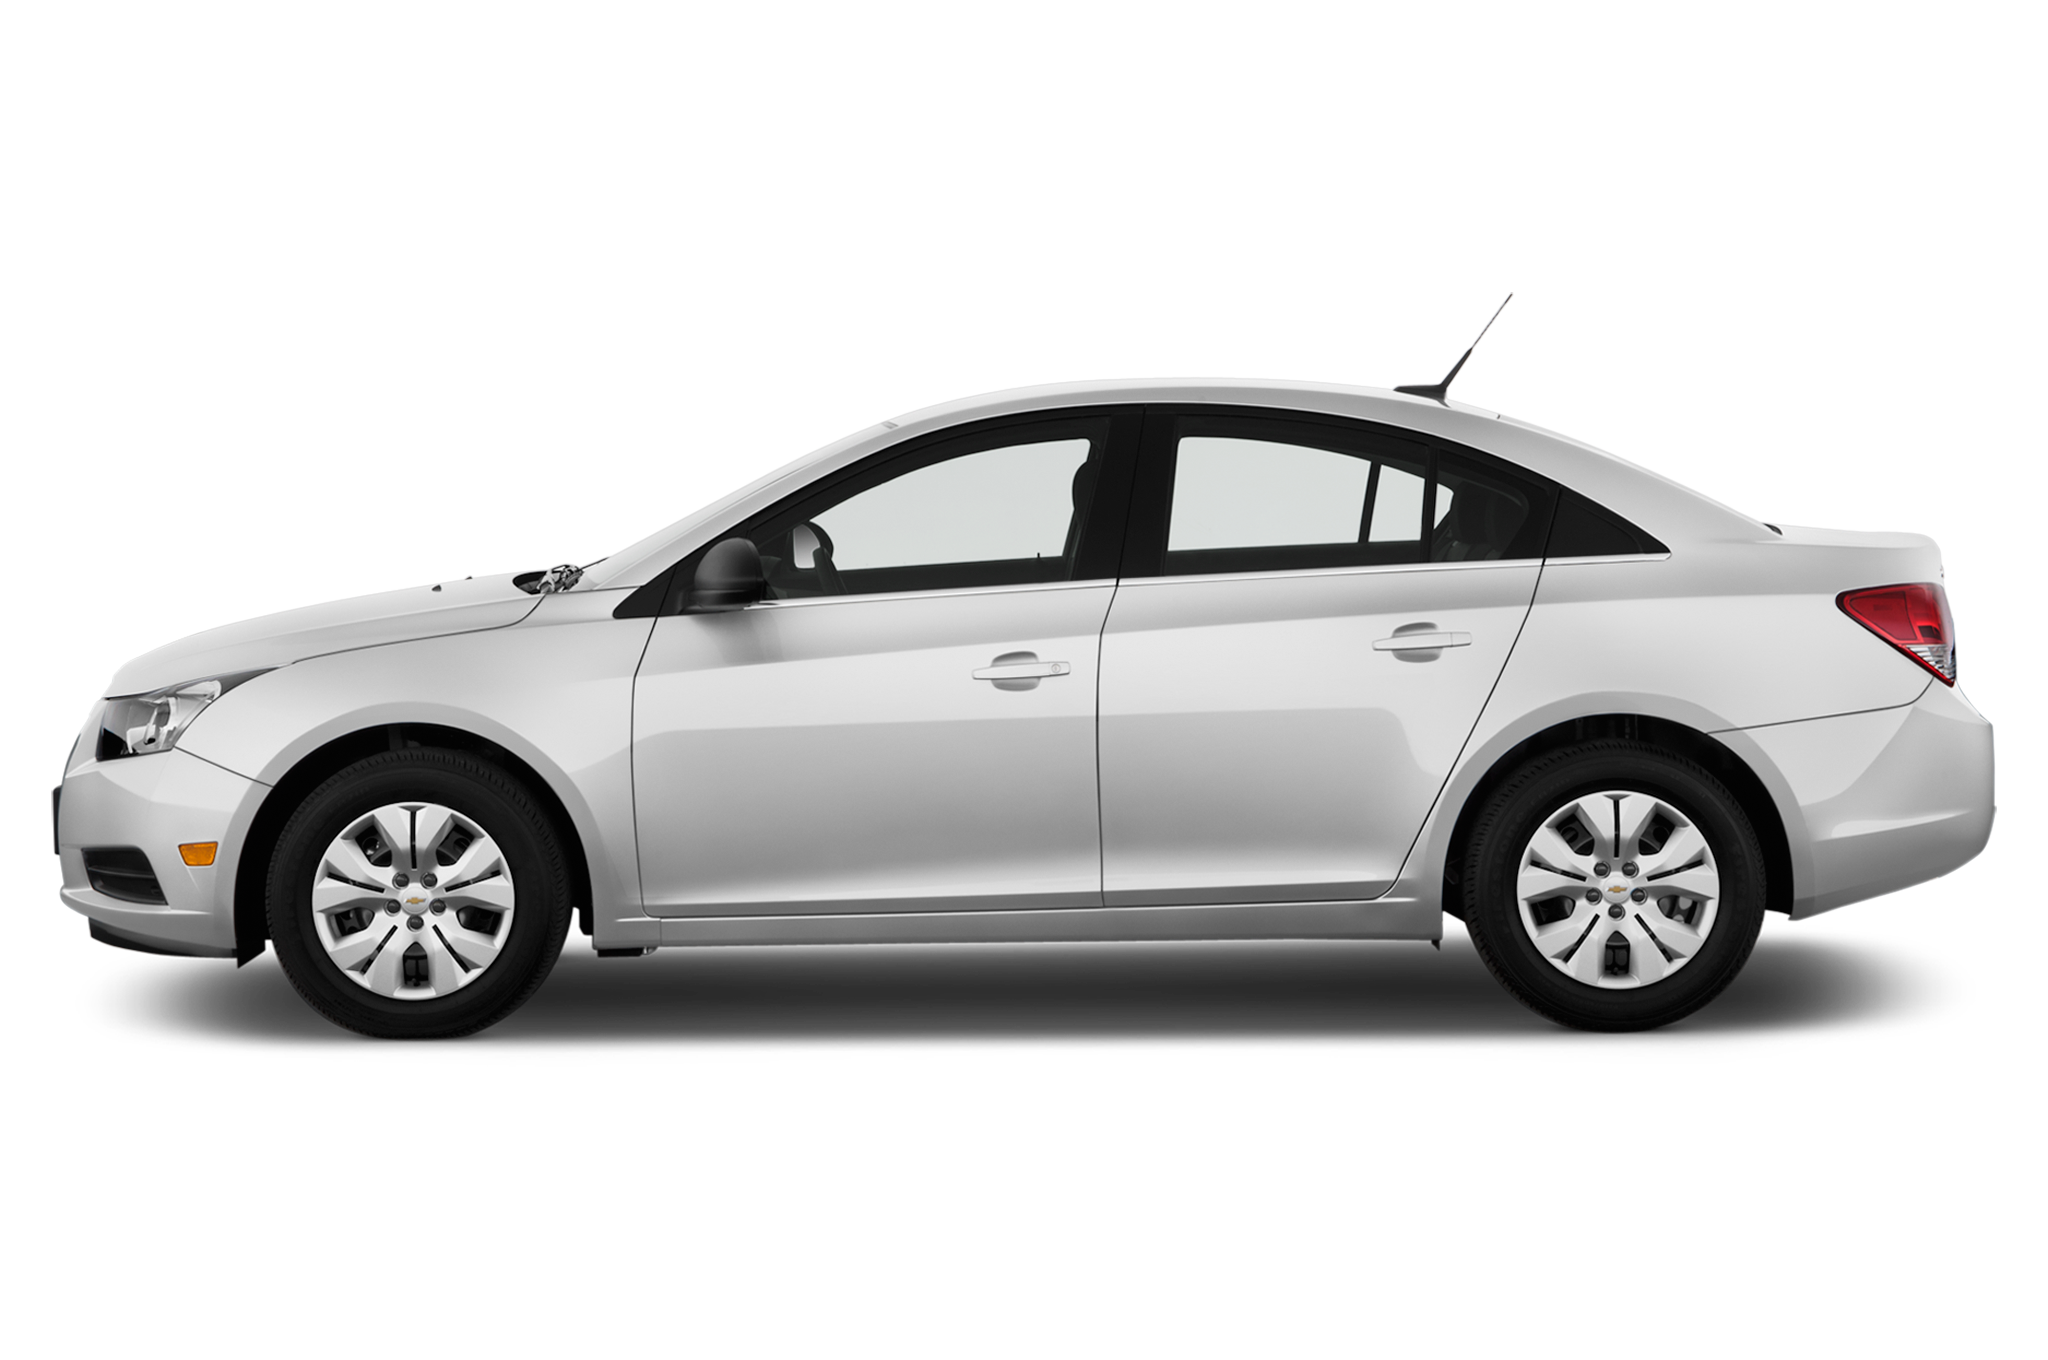 Car side view png. Chevrolet cruze image purepng